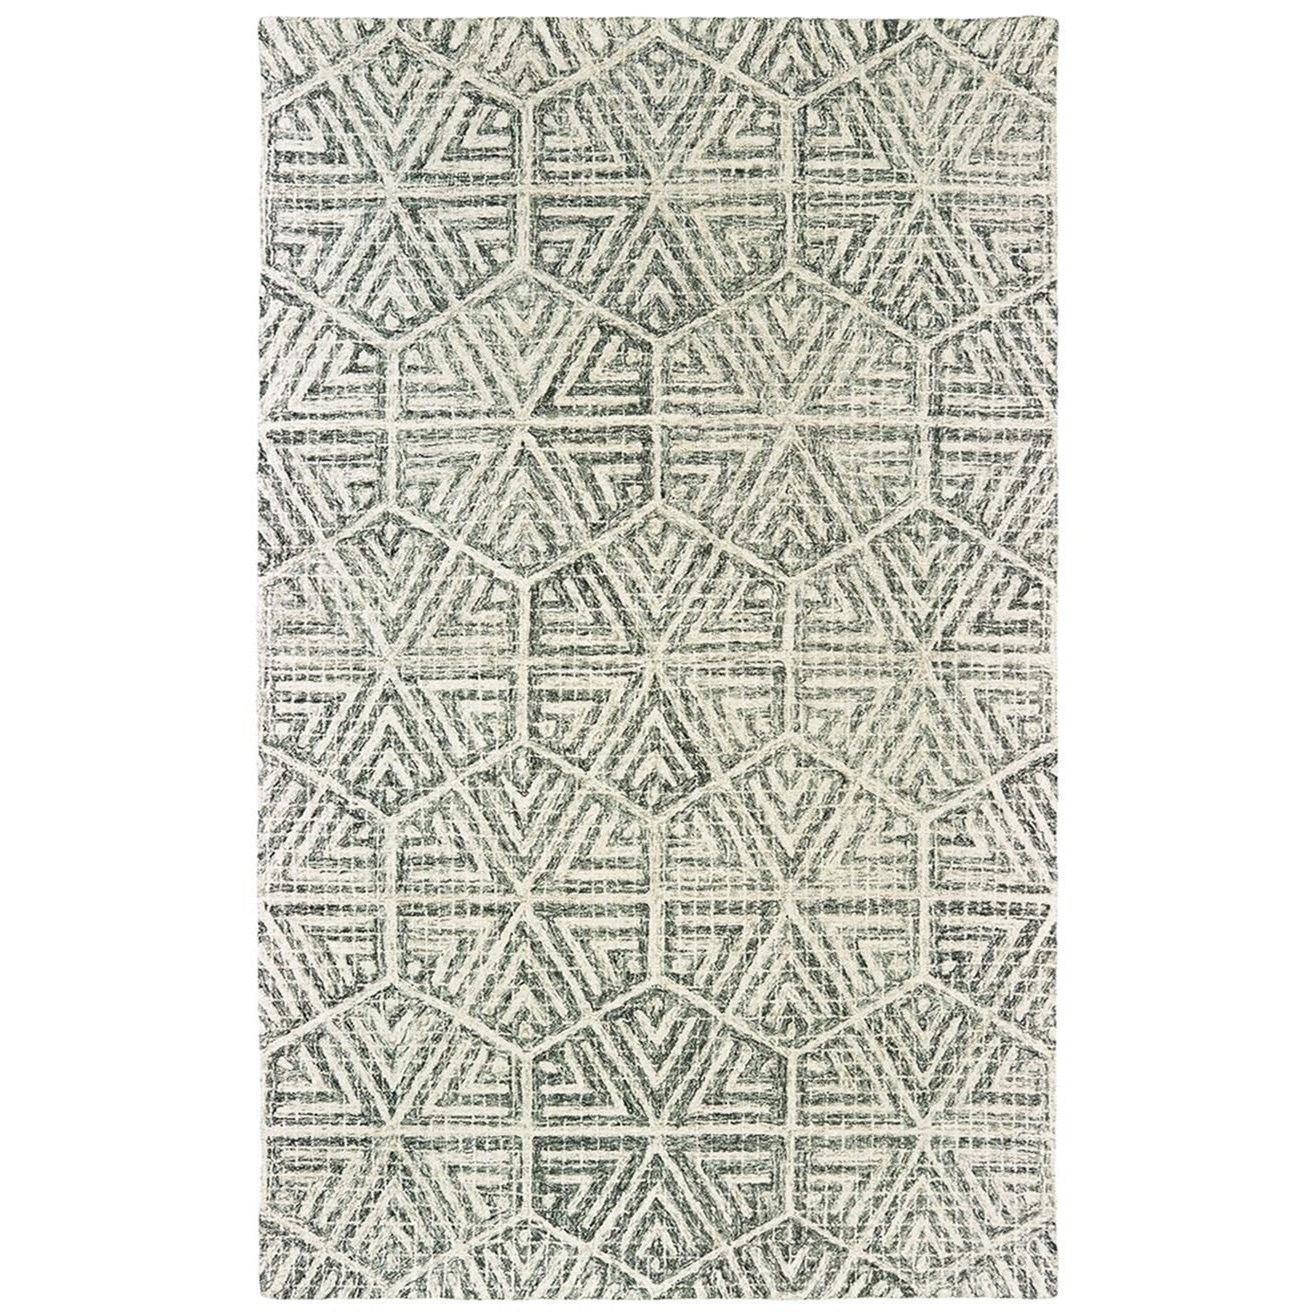 TALLAVERA 8' X 10' Rectangle Area Rug by Oriental Weavers at Red Knot